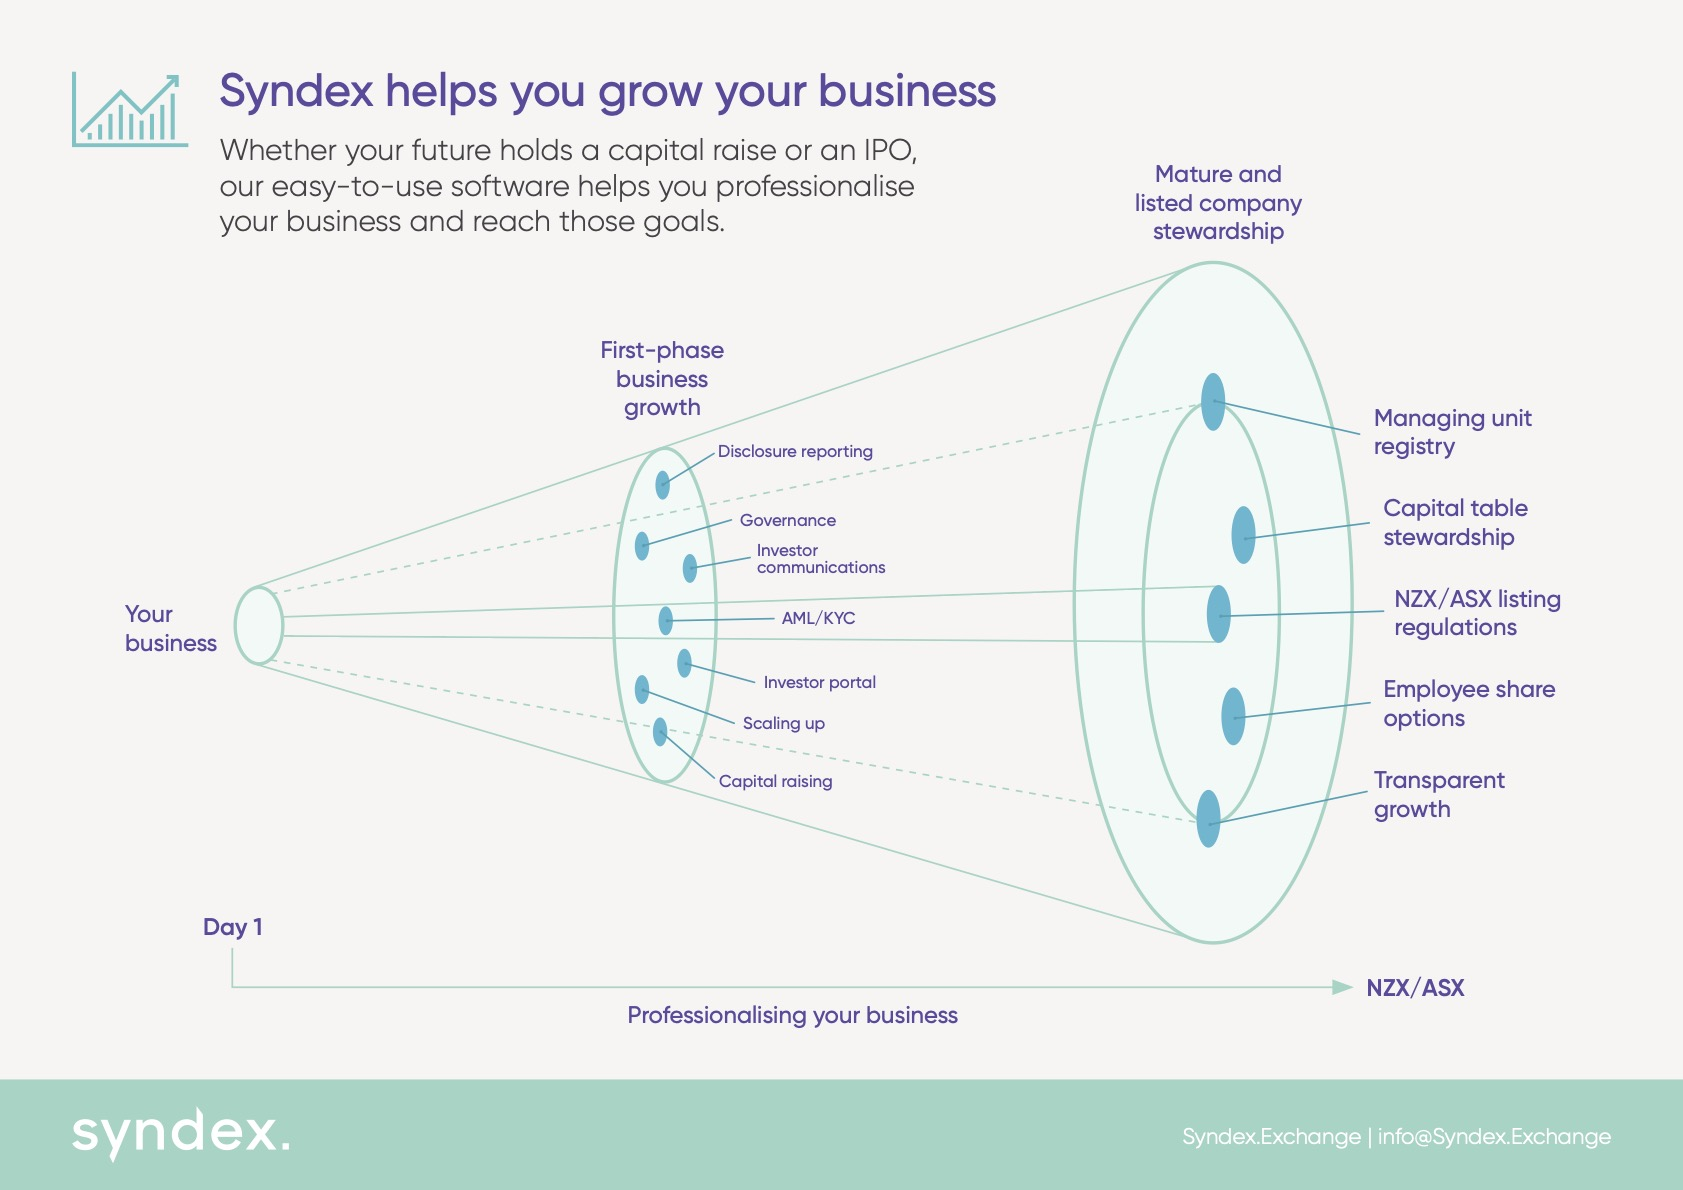 The business growth journey requires capital raising, registry management and investor relations.